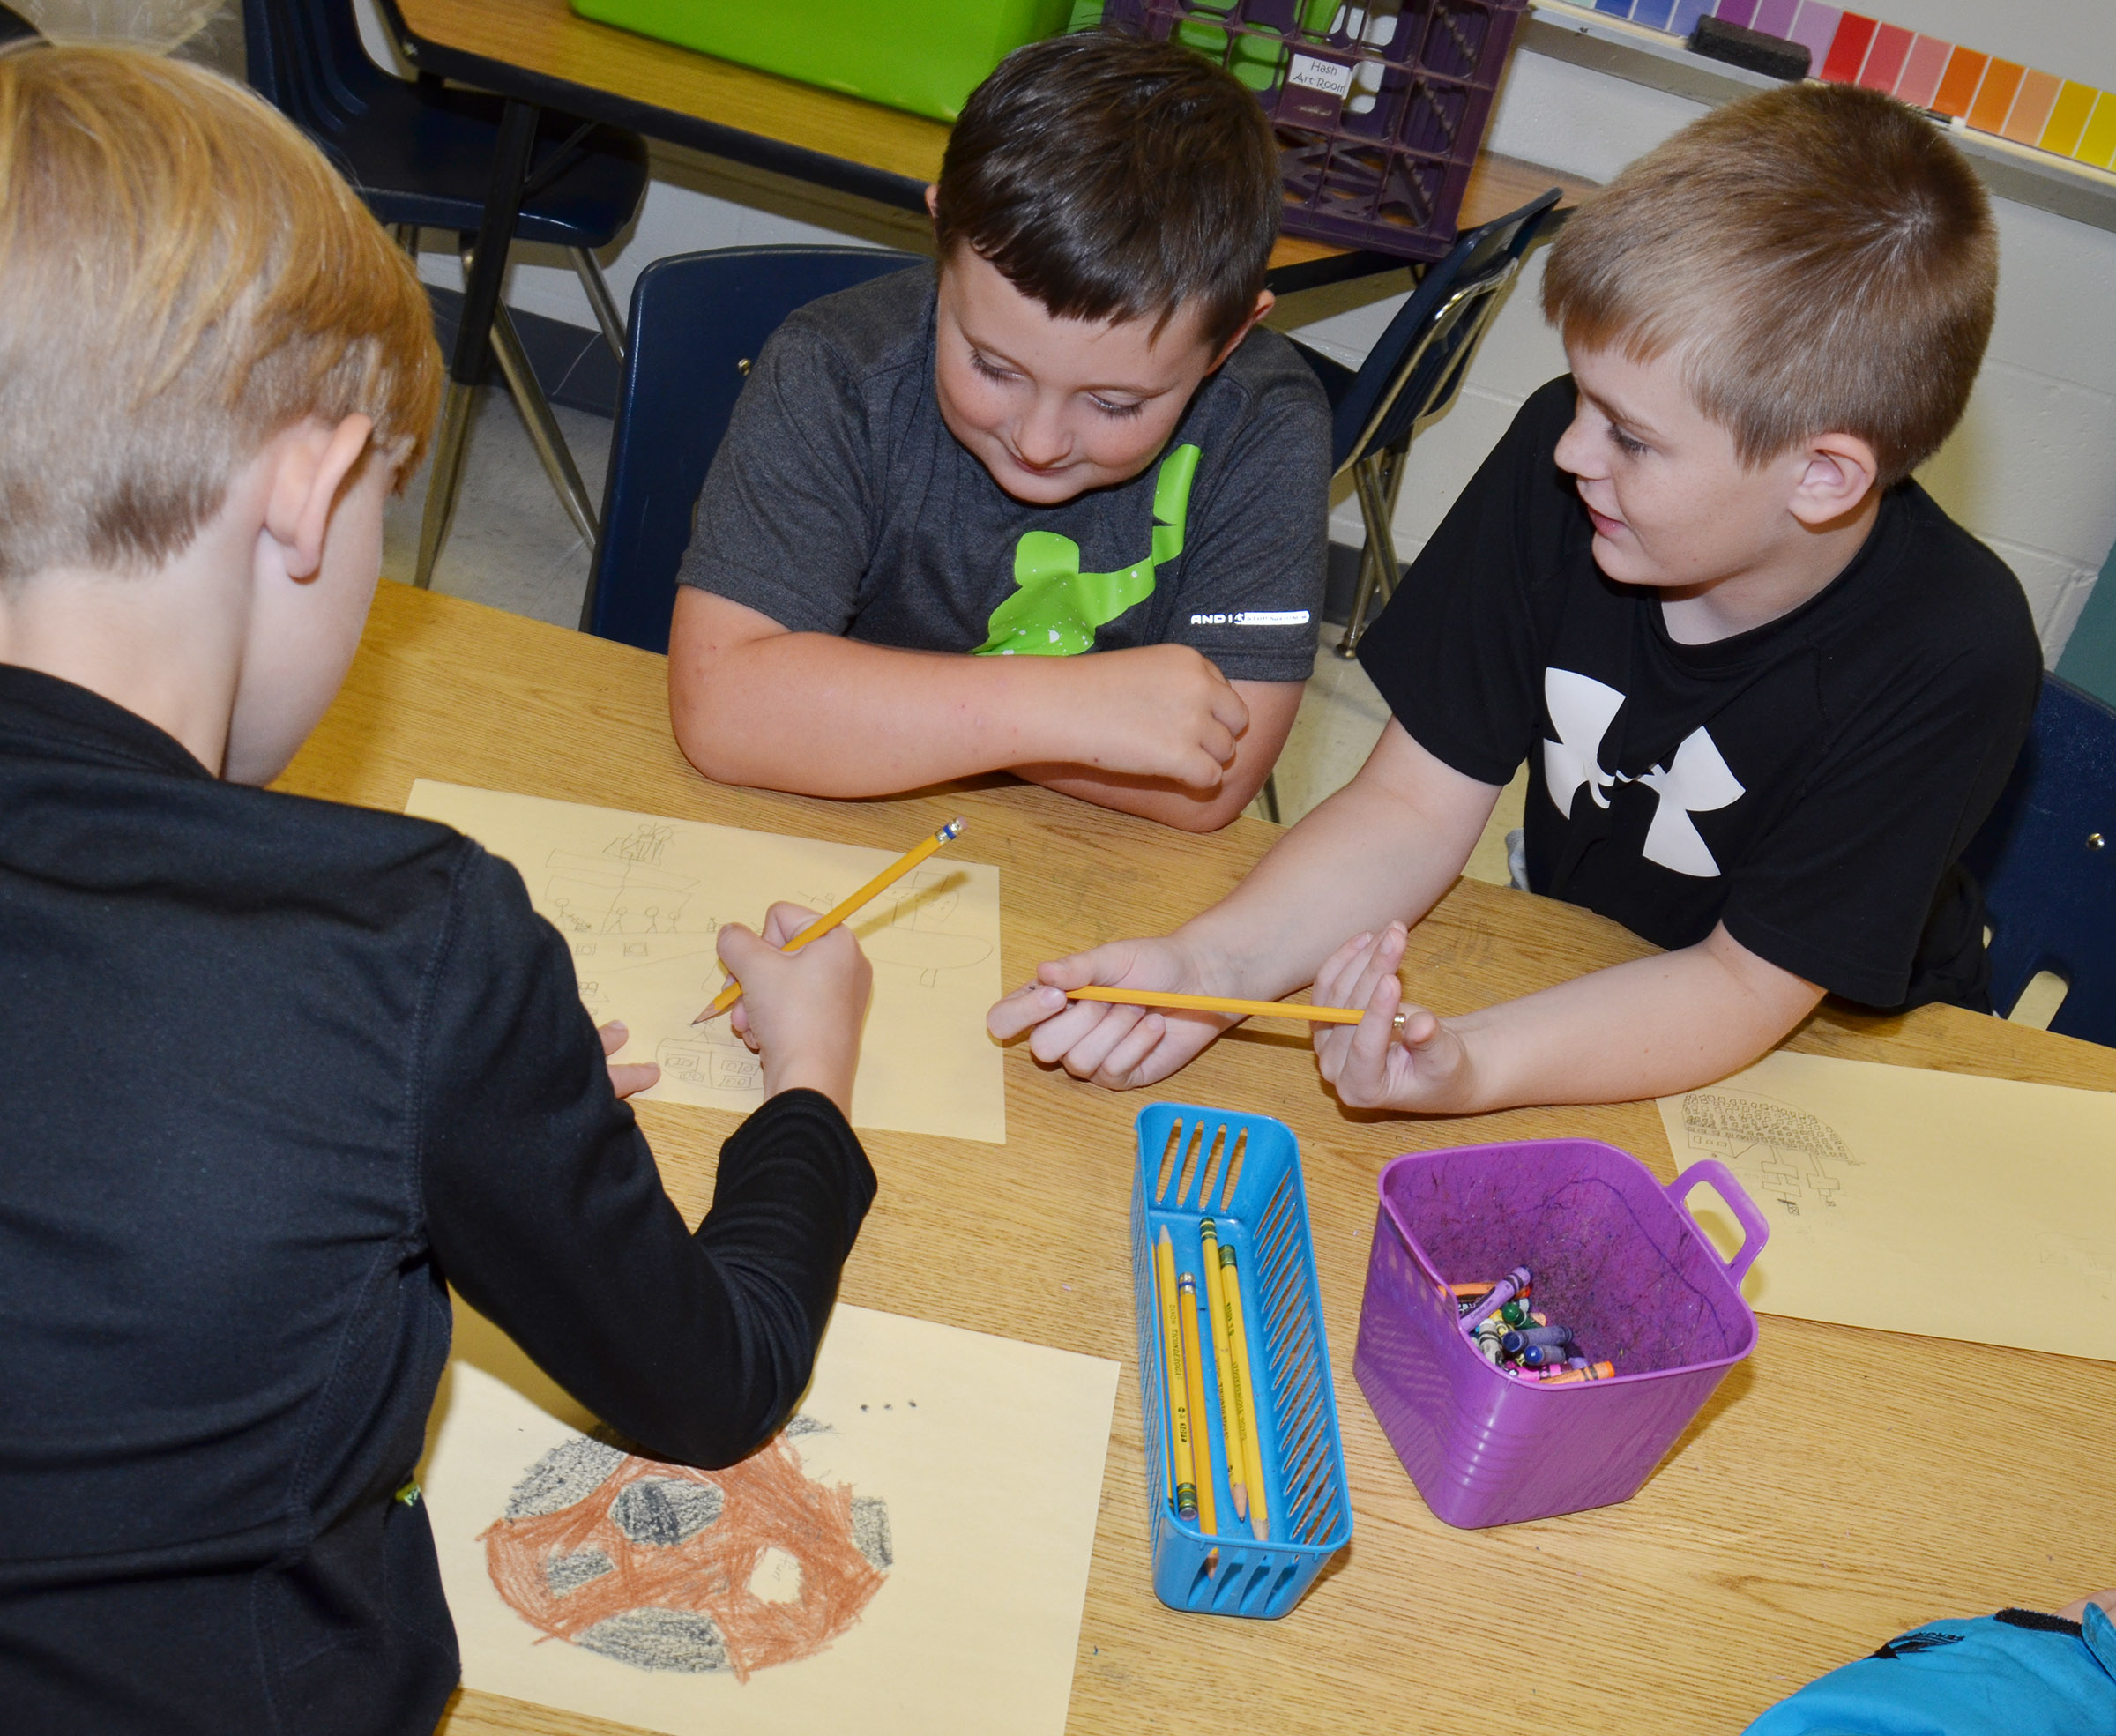 CES fourth-graders Isaiah Scharbrough, at left, and Cash Cowan talk about their drawings with classmate Jonathan Releford.